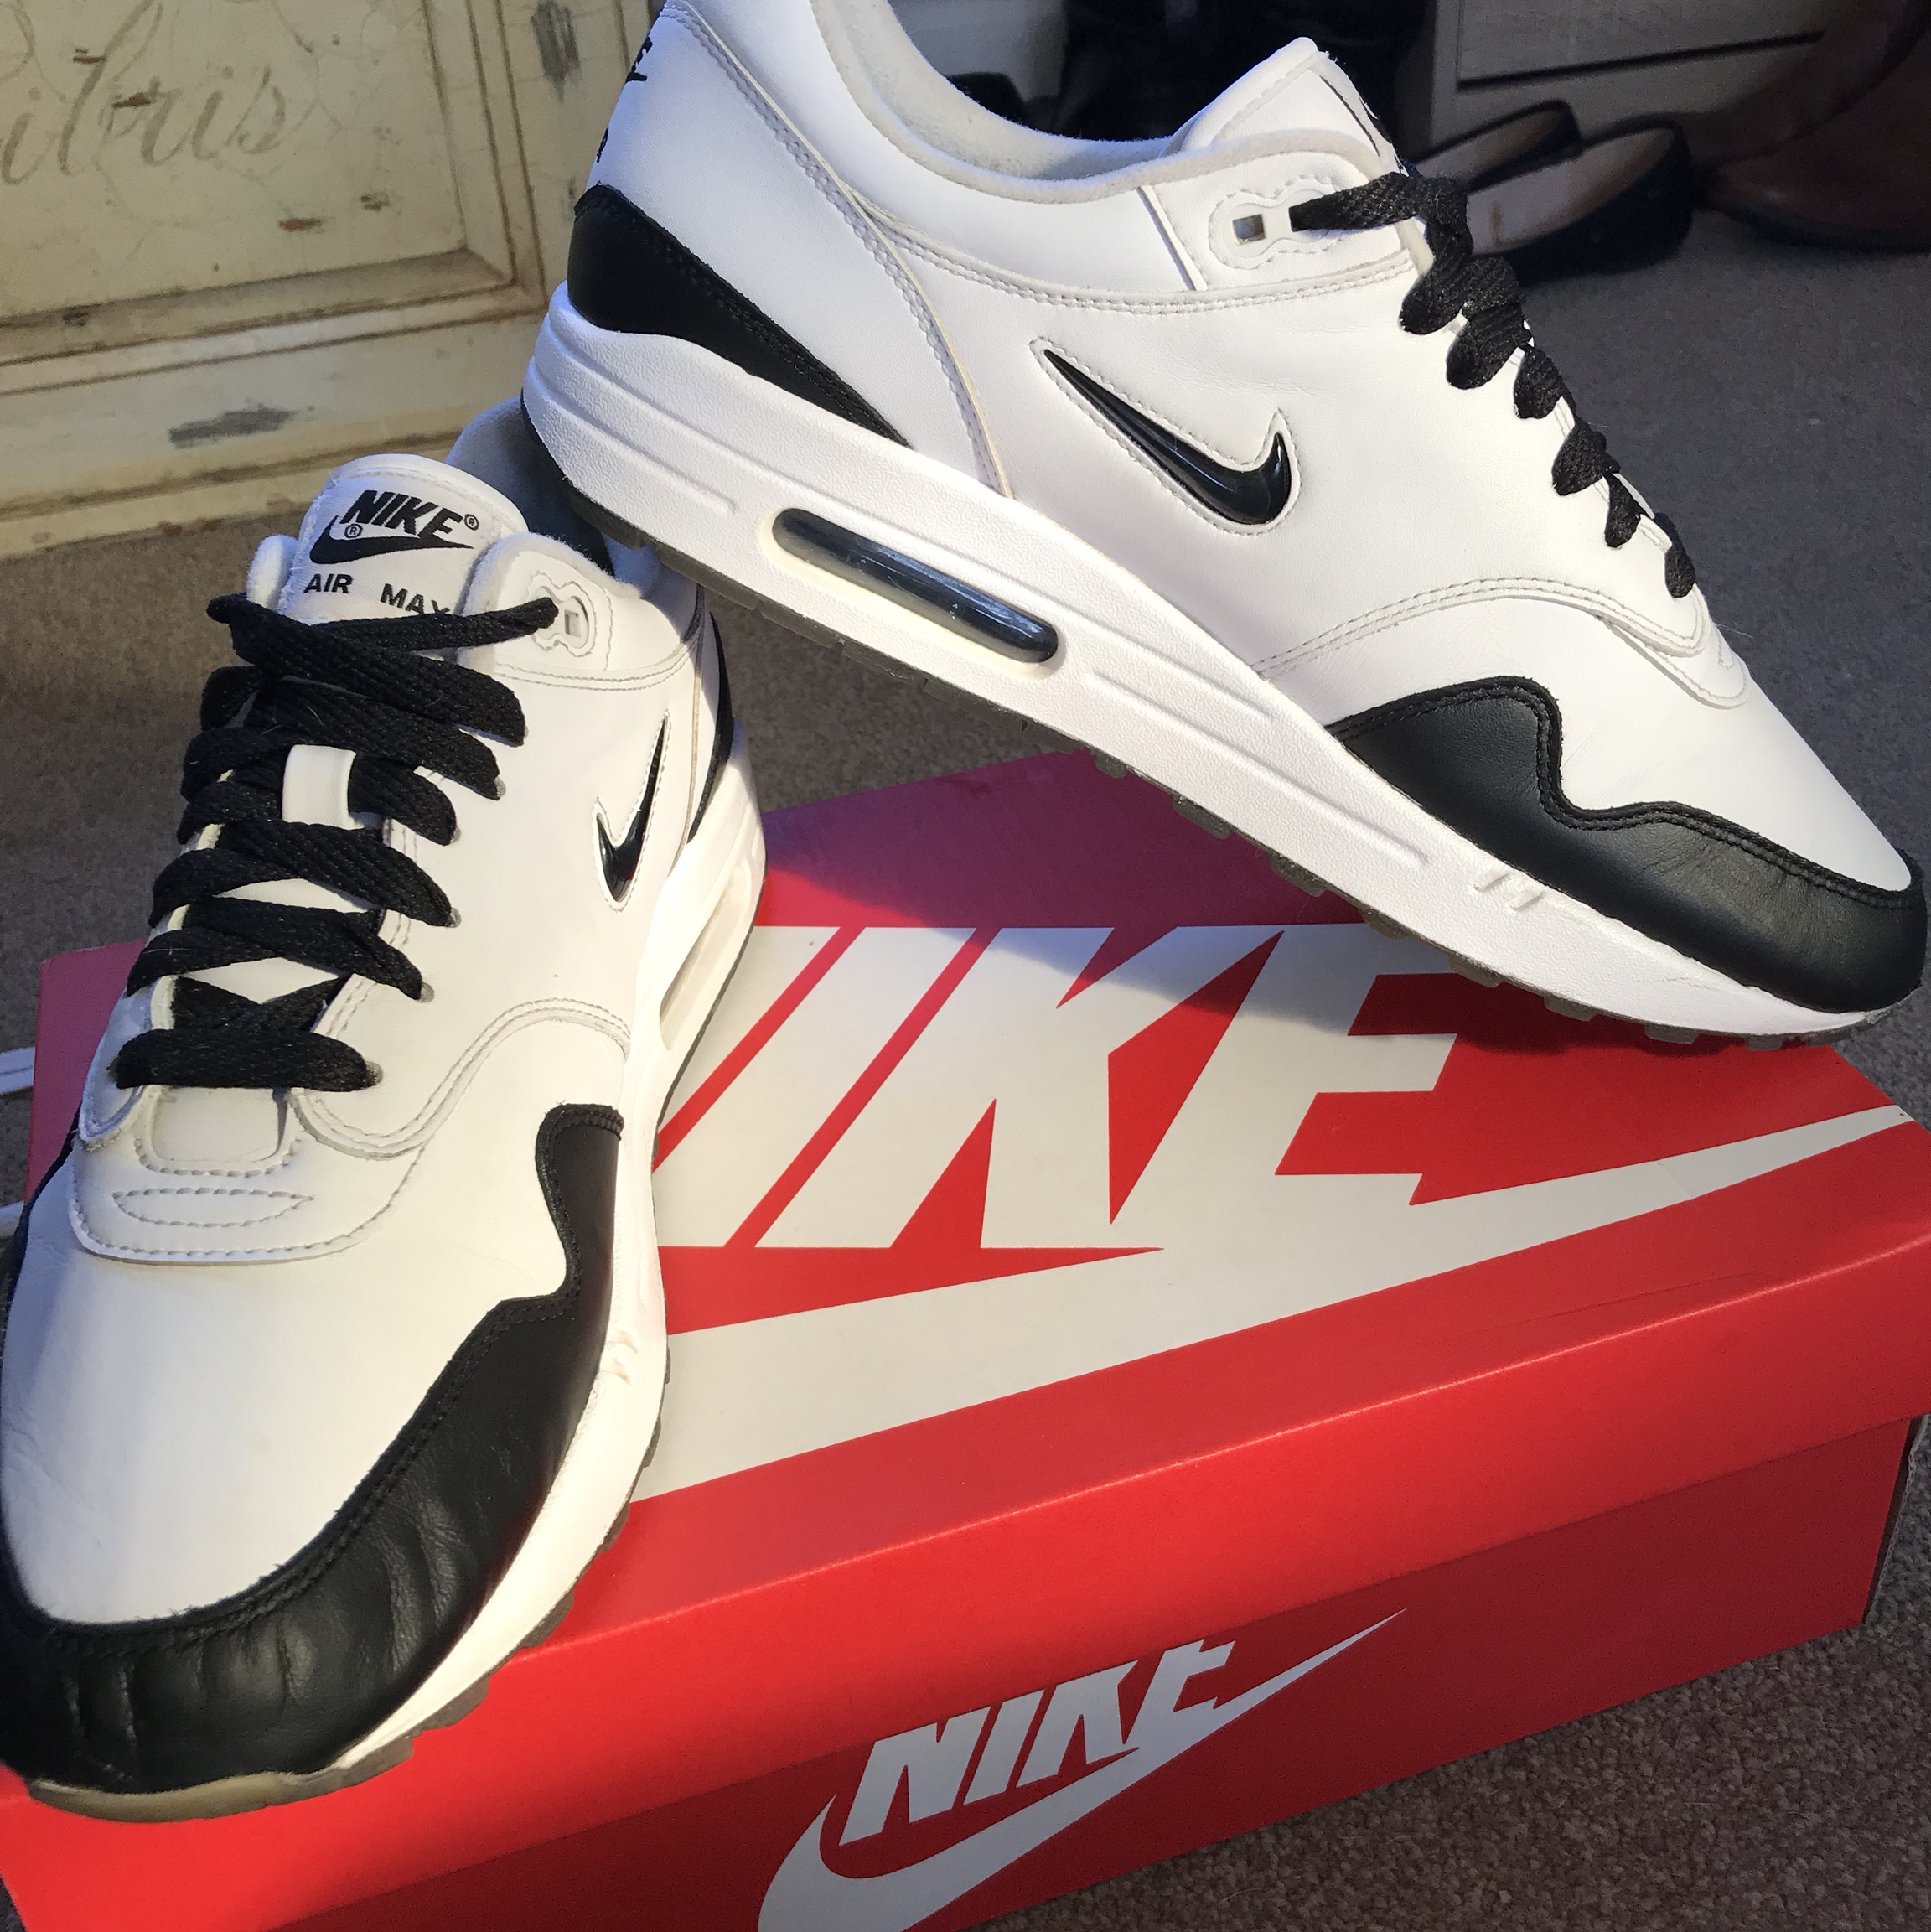 Nike Air Max 1 Jewel Premium SC Bought from the Depop